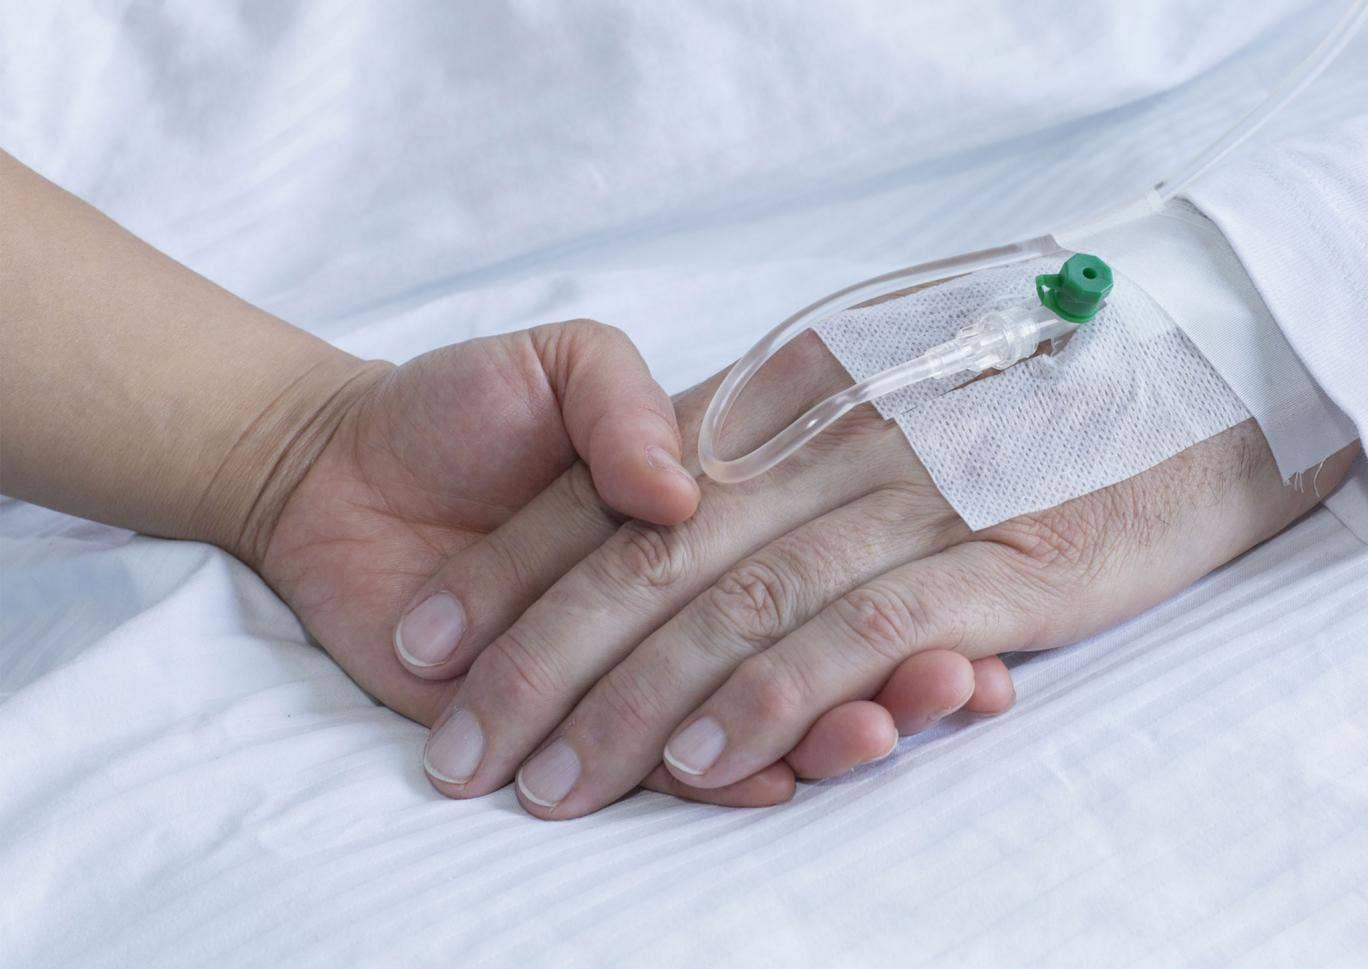 Should we allow people to choose when they die?